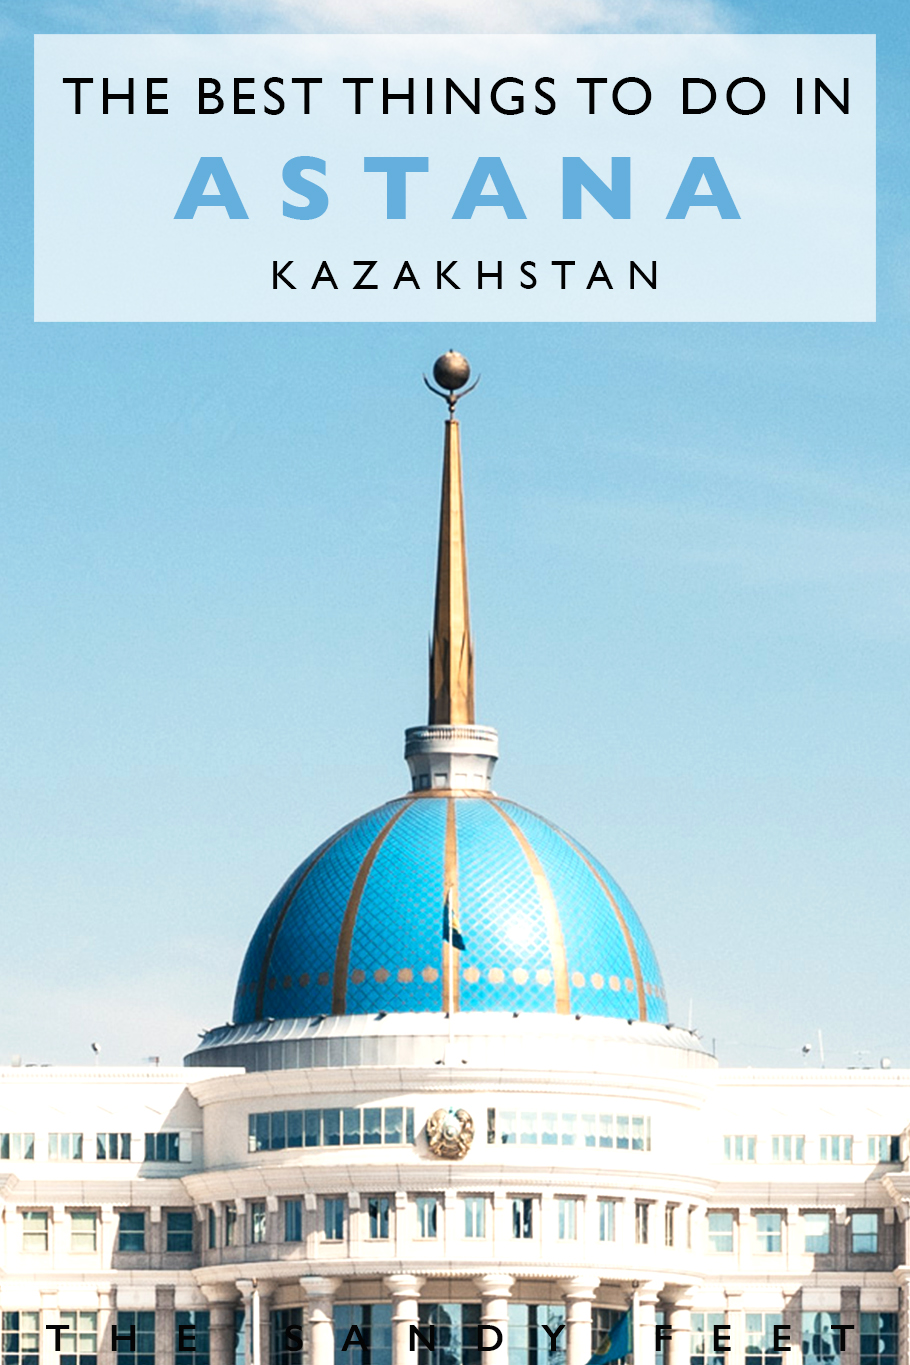 In The City Of Lights: The Best Things To Do In Astana | Kazakhstan